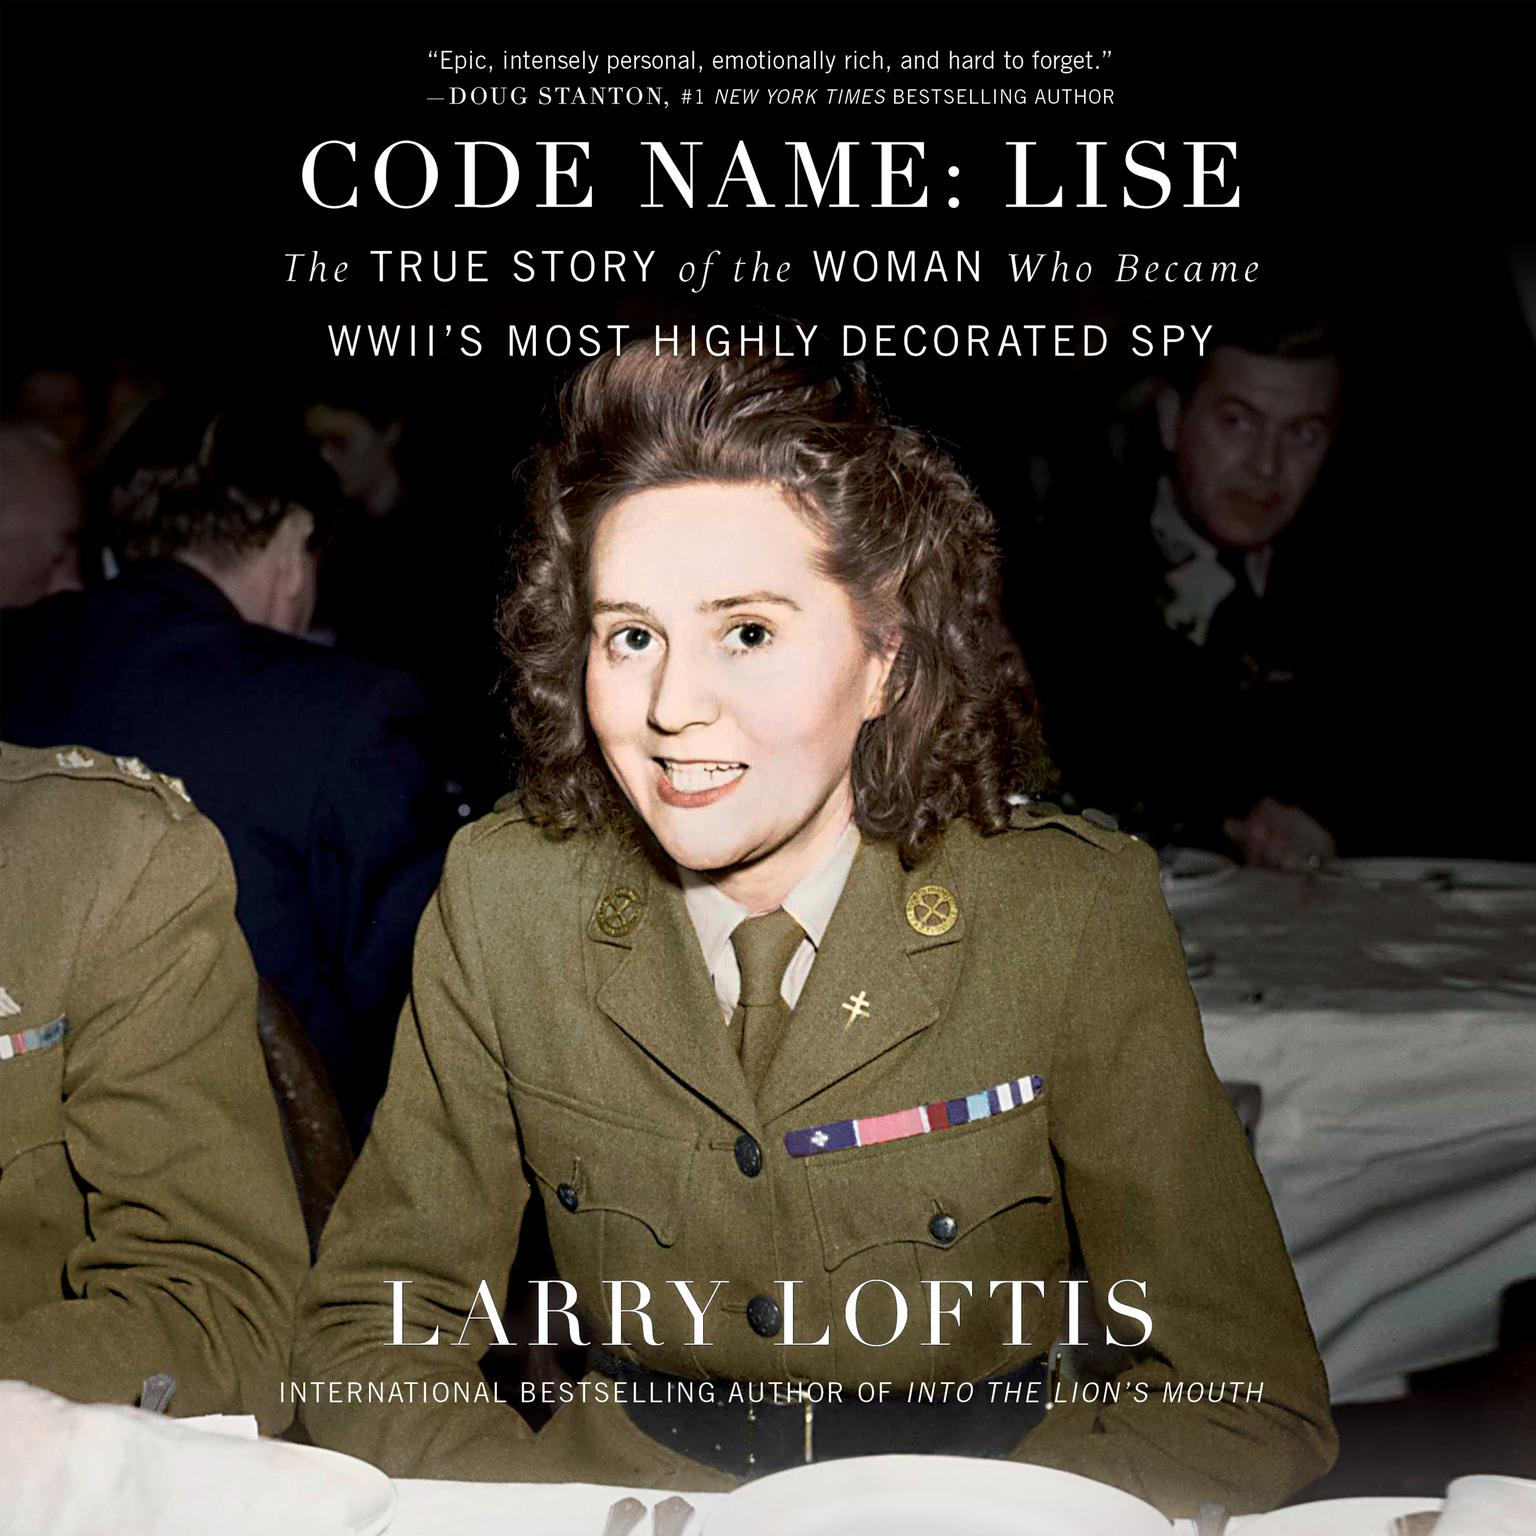 Printable Code Name: Lise: The True Story of the Spy Who Became WWII's Most Highly Decorated Woman Audiobook Cover Art